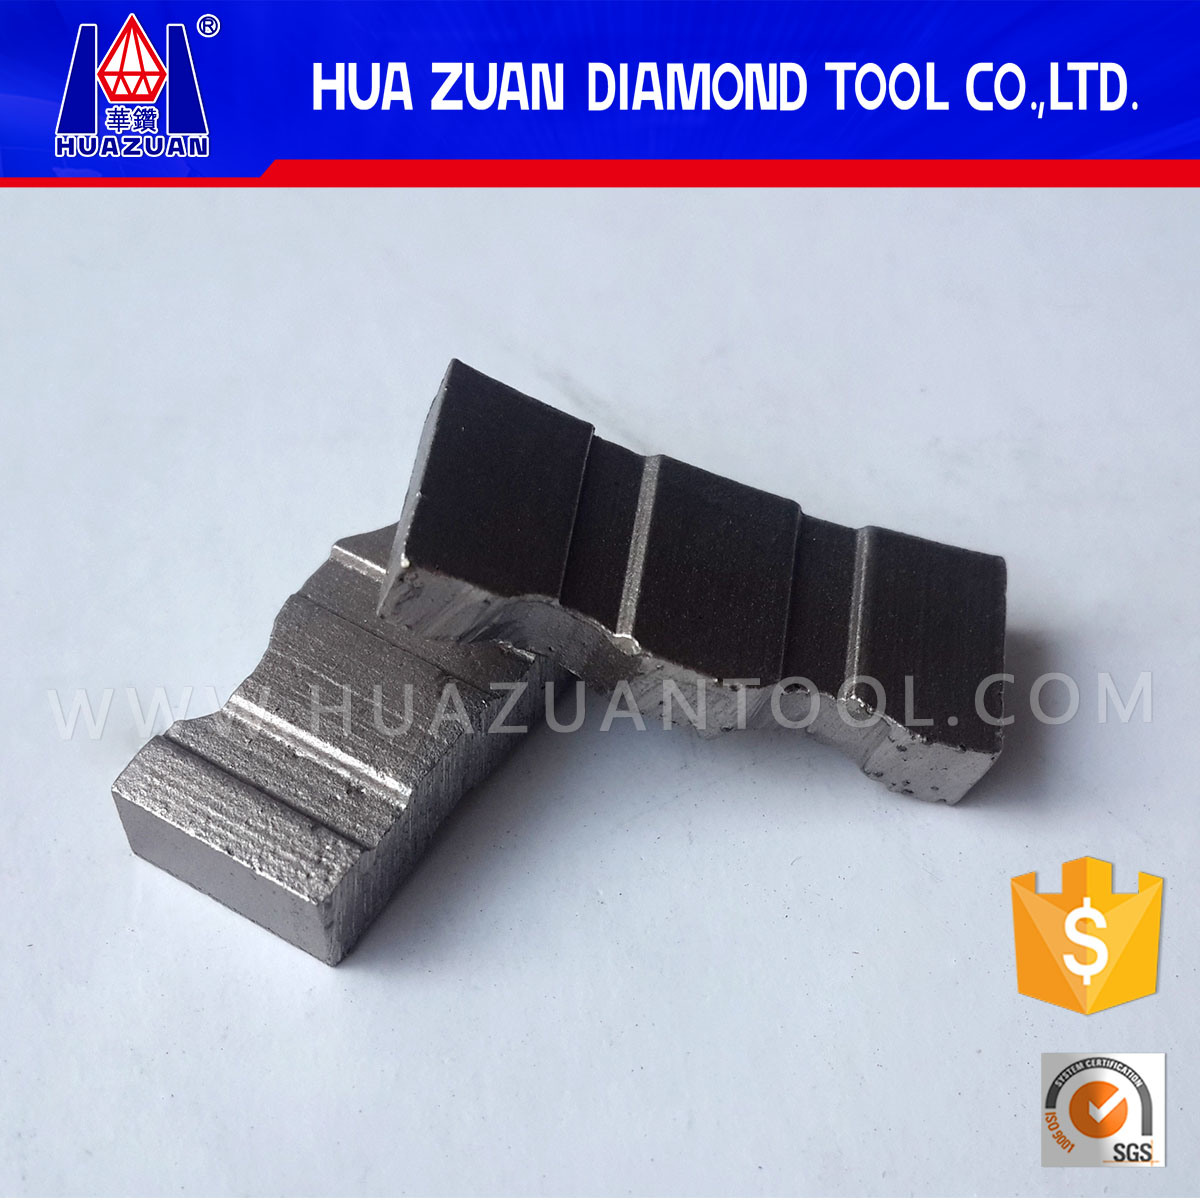 Diamond Core Drill Bit Segment for Construction